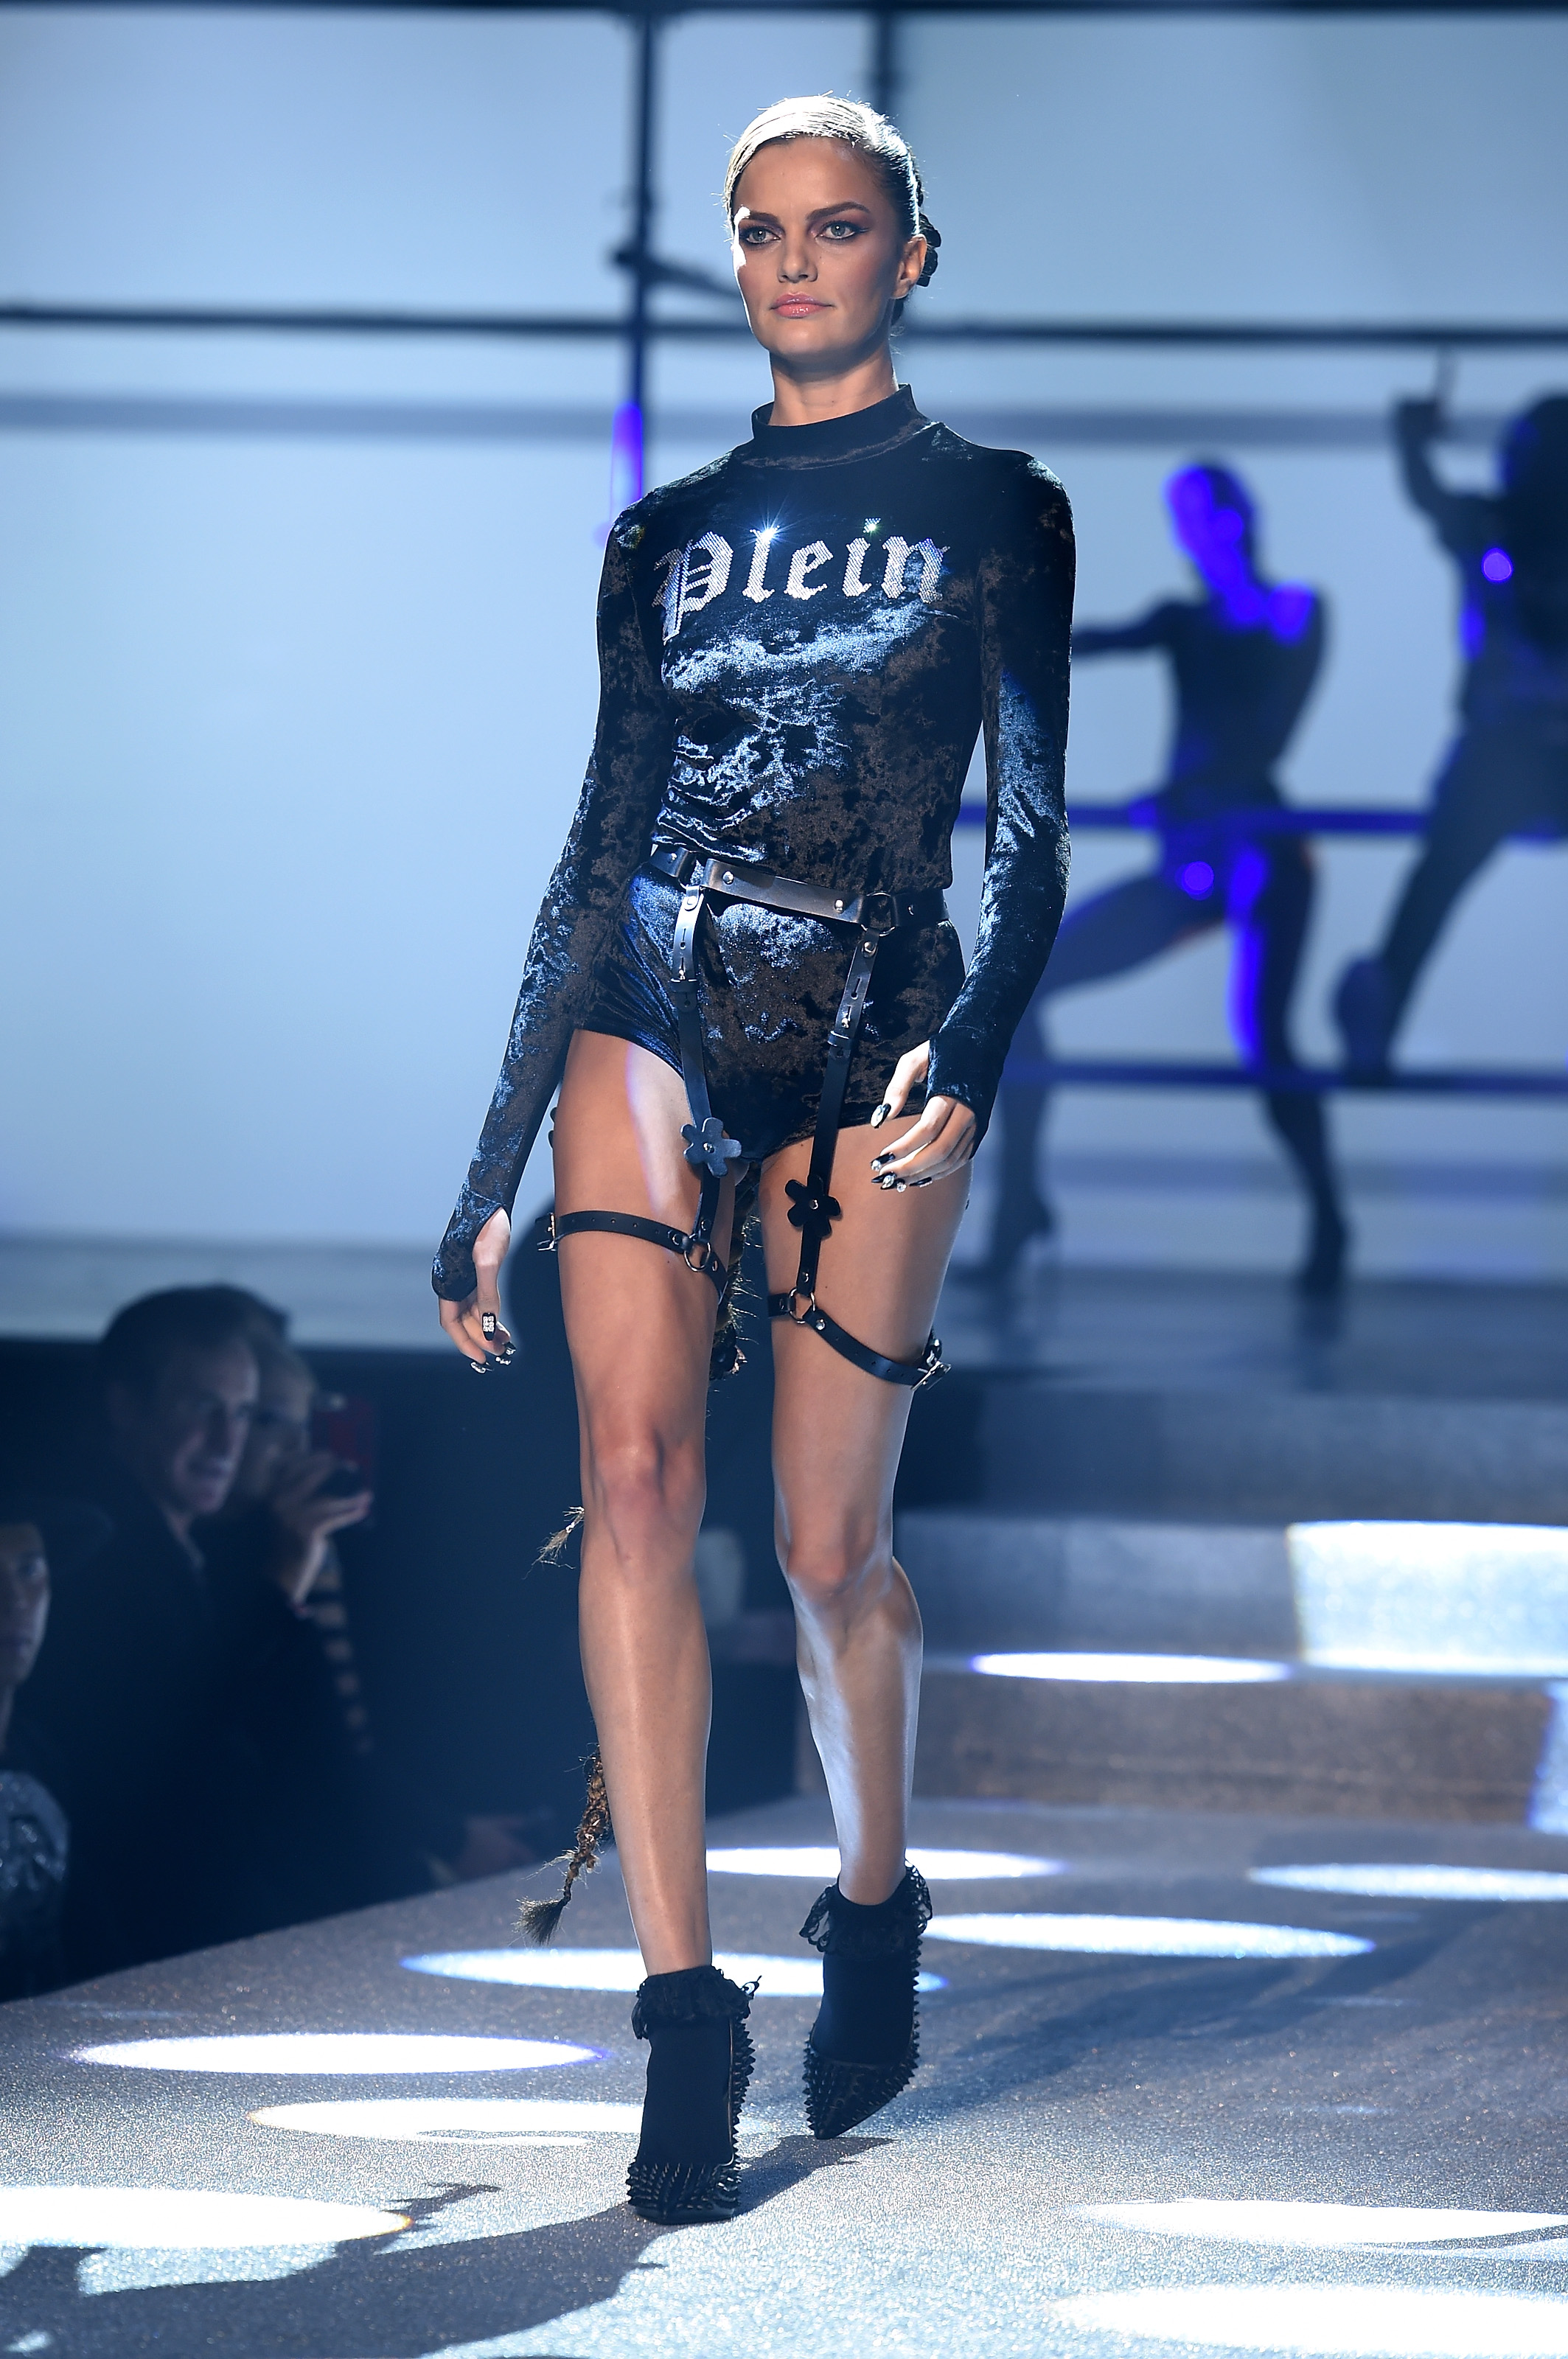 Revija Philipp Plein poput onog kojeg u spotu za pjesmu Look What You Made Me Do nosi pjevačica Taylor Swift